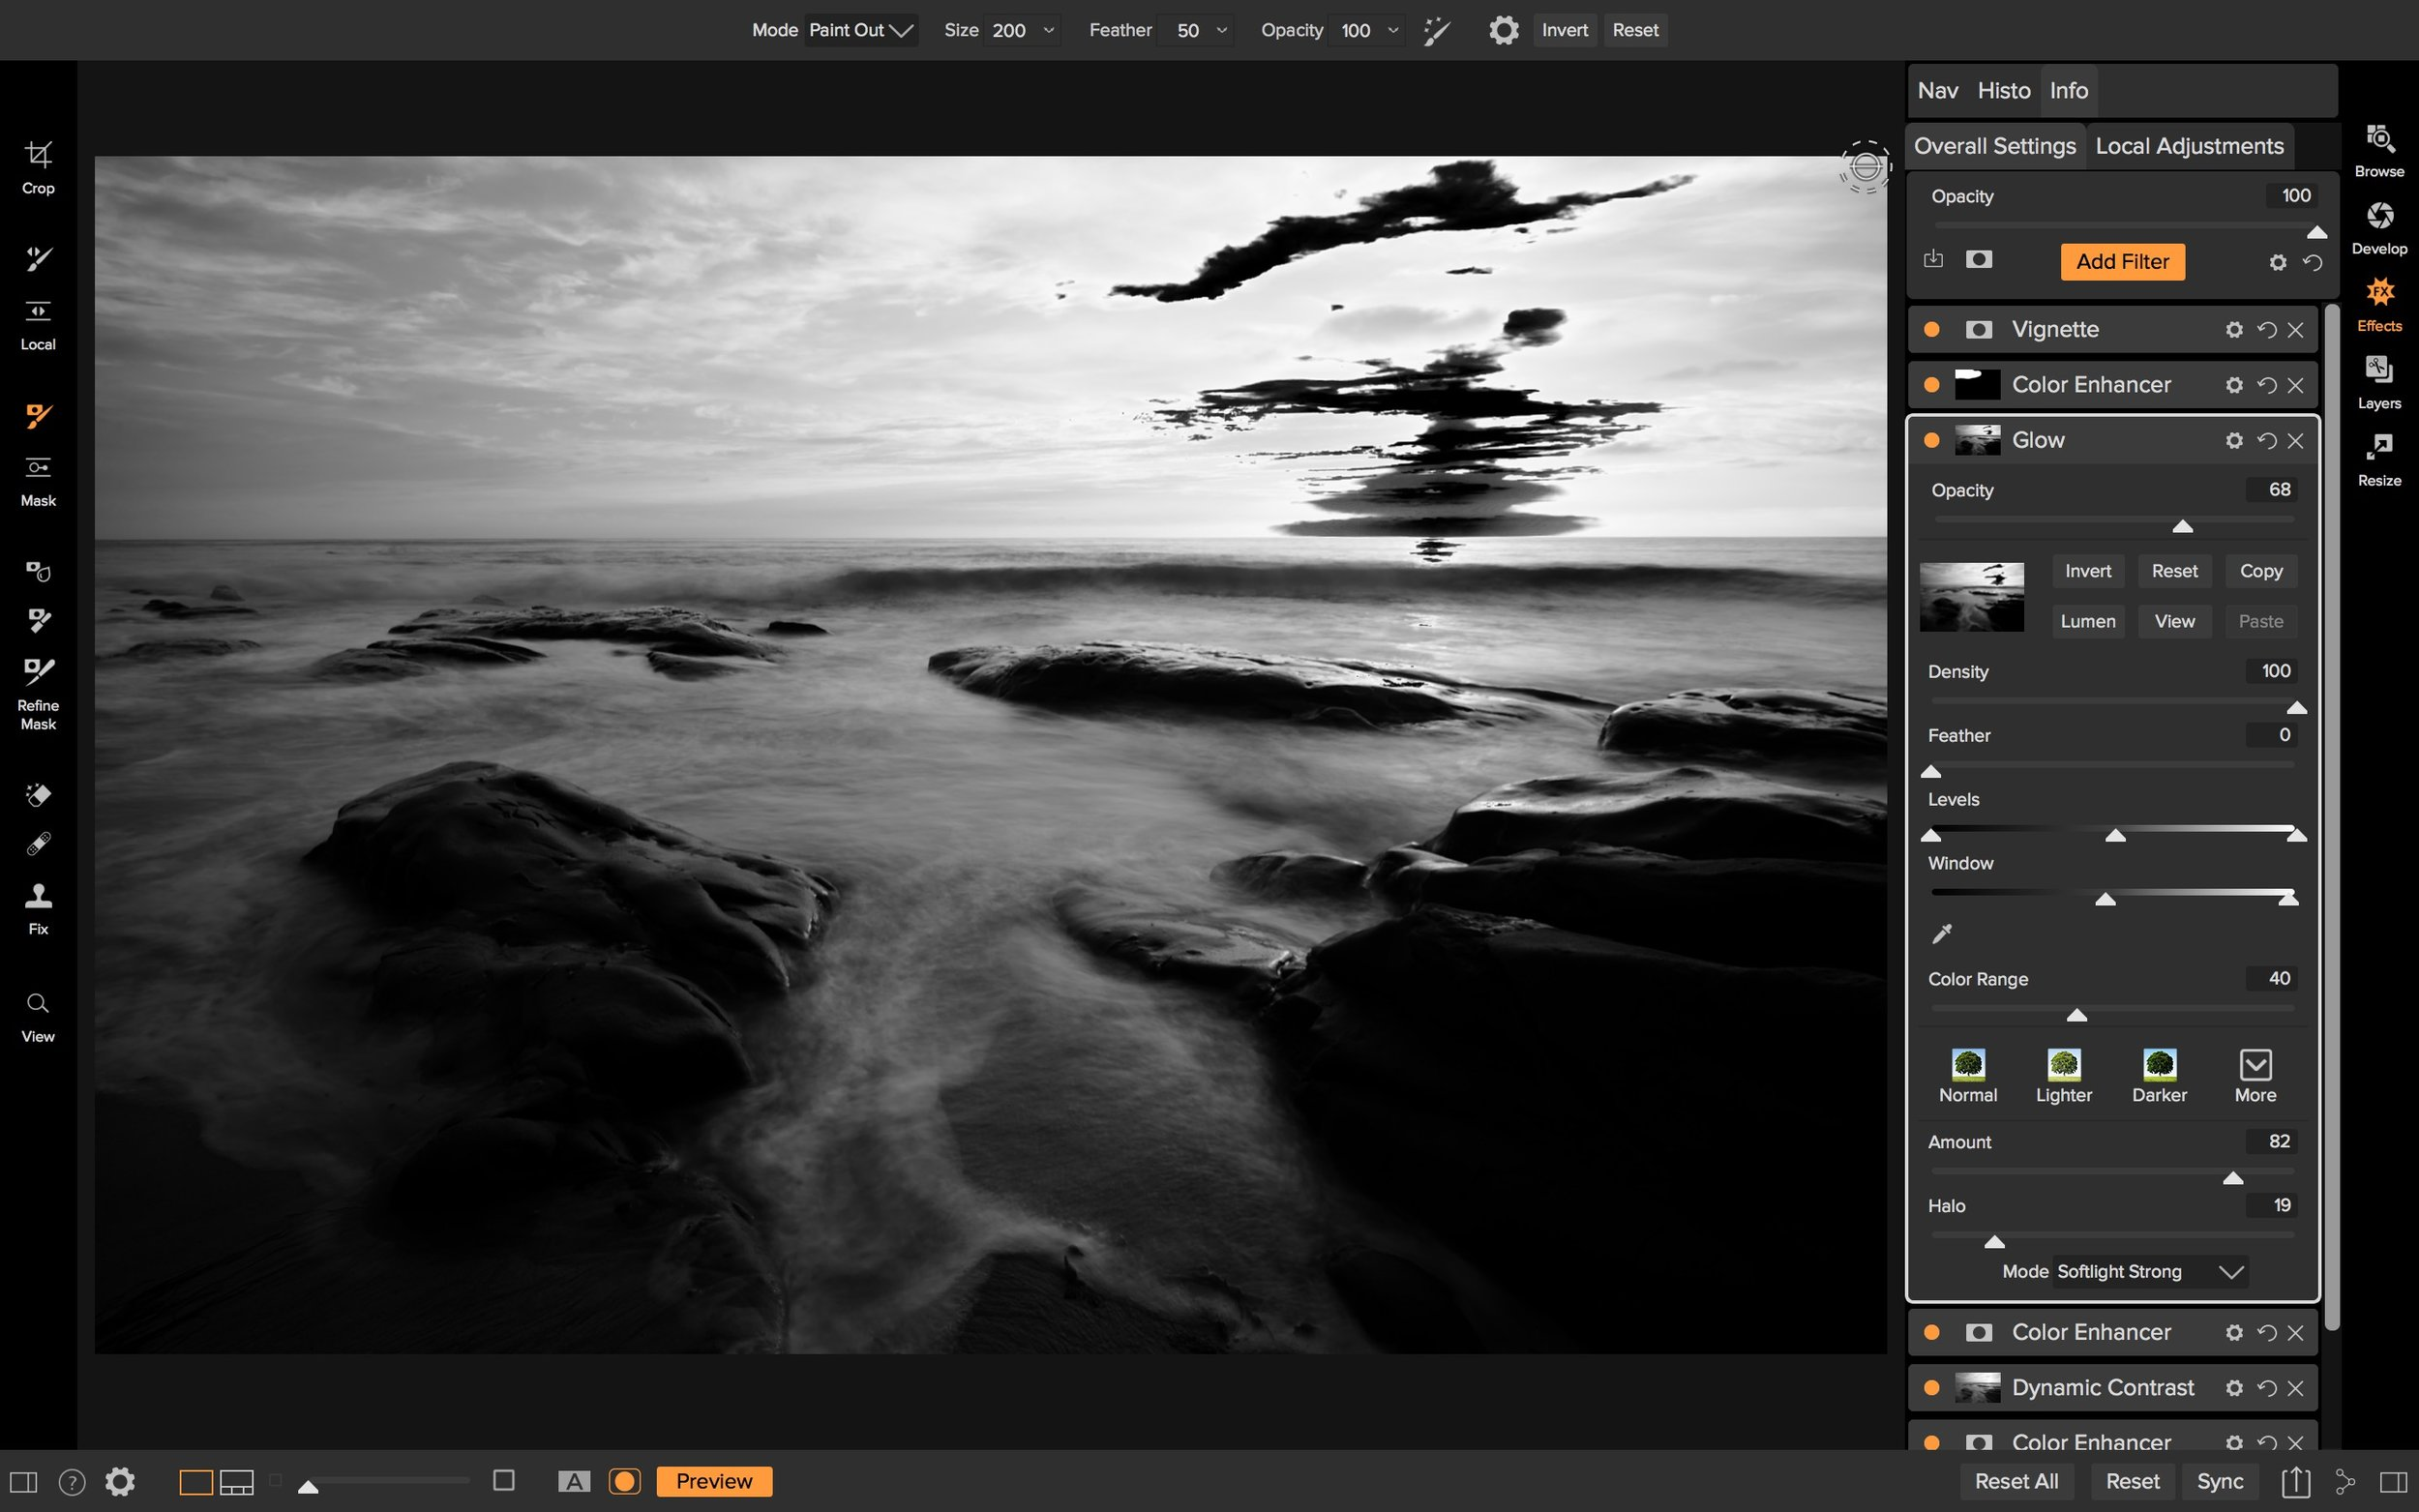 Complex luminosity masks made easy with the Levels and Window sliders.